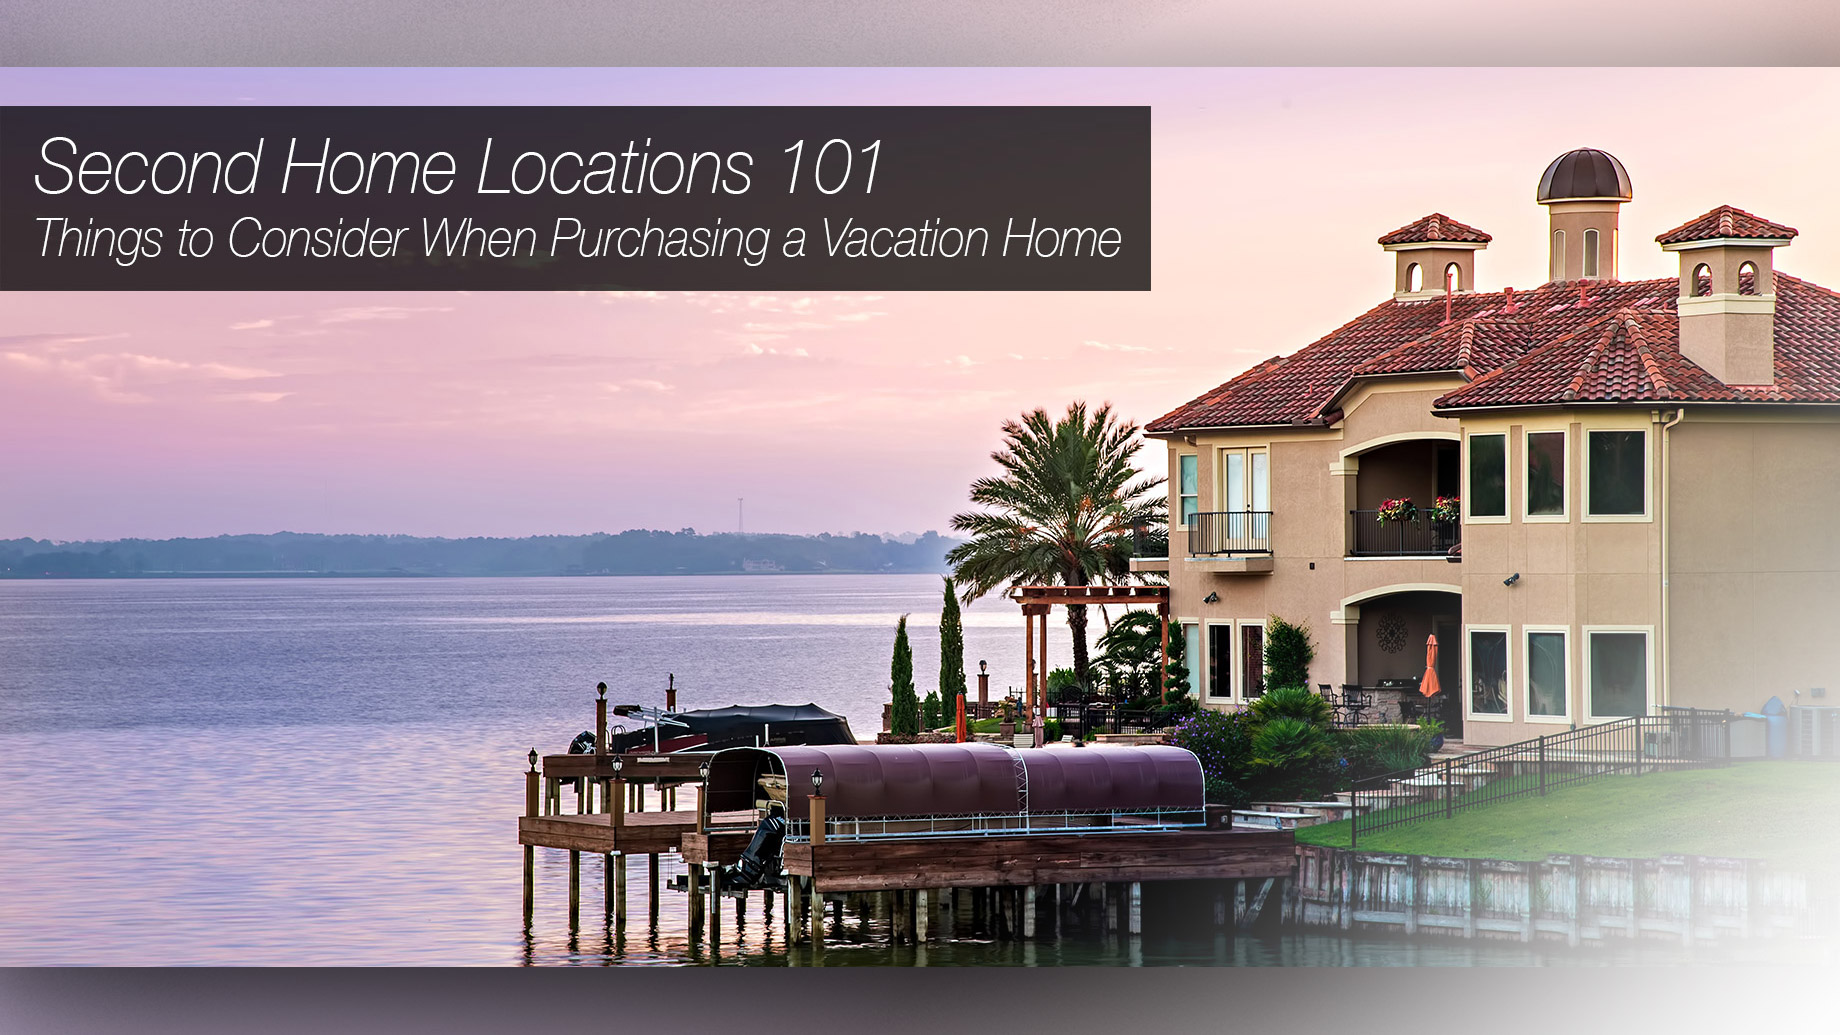 Second Home Locations 101 - Things to Consider When Purchasing a Vacation Home